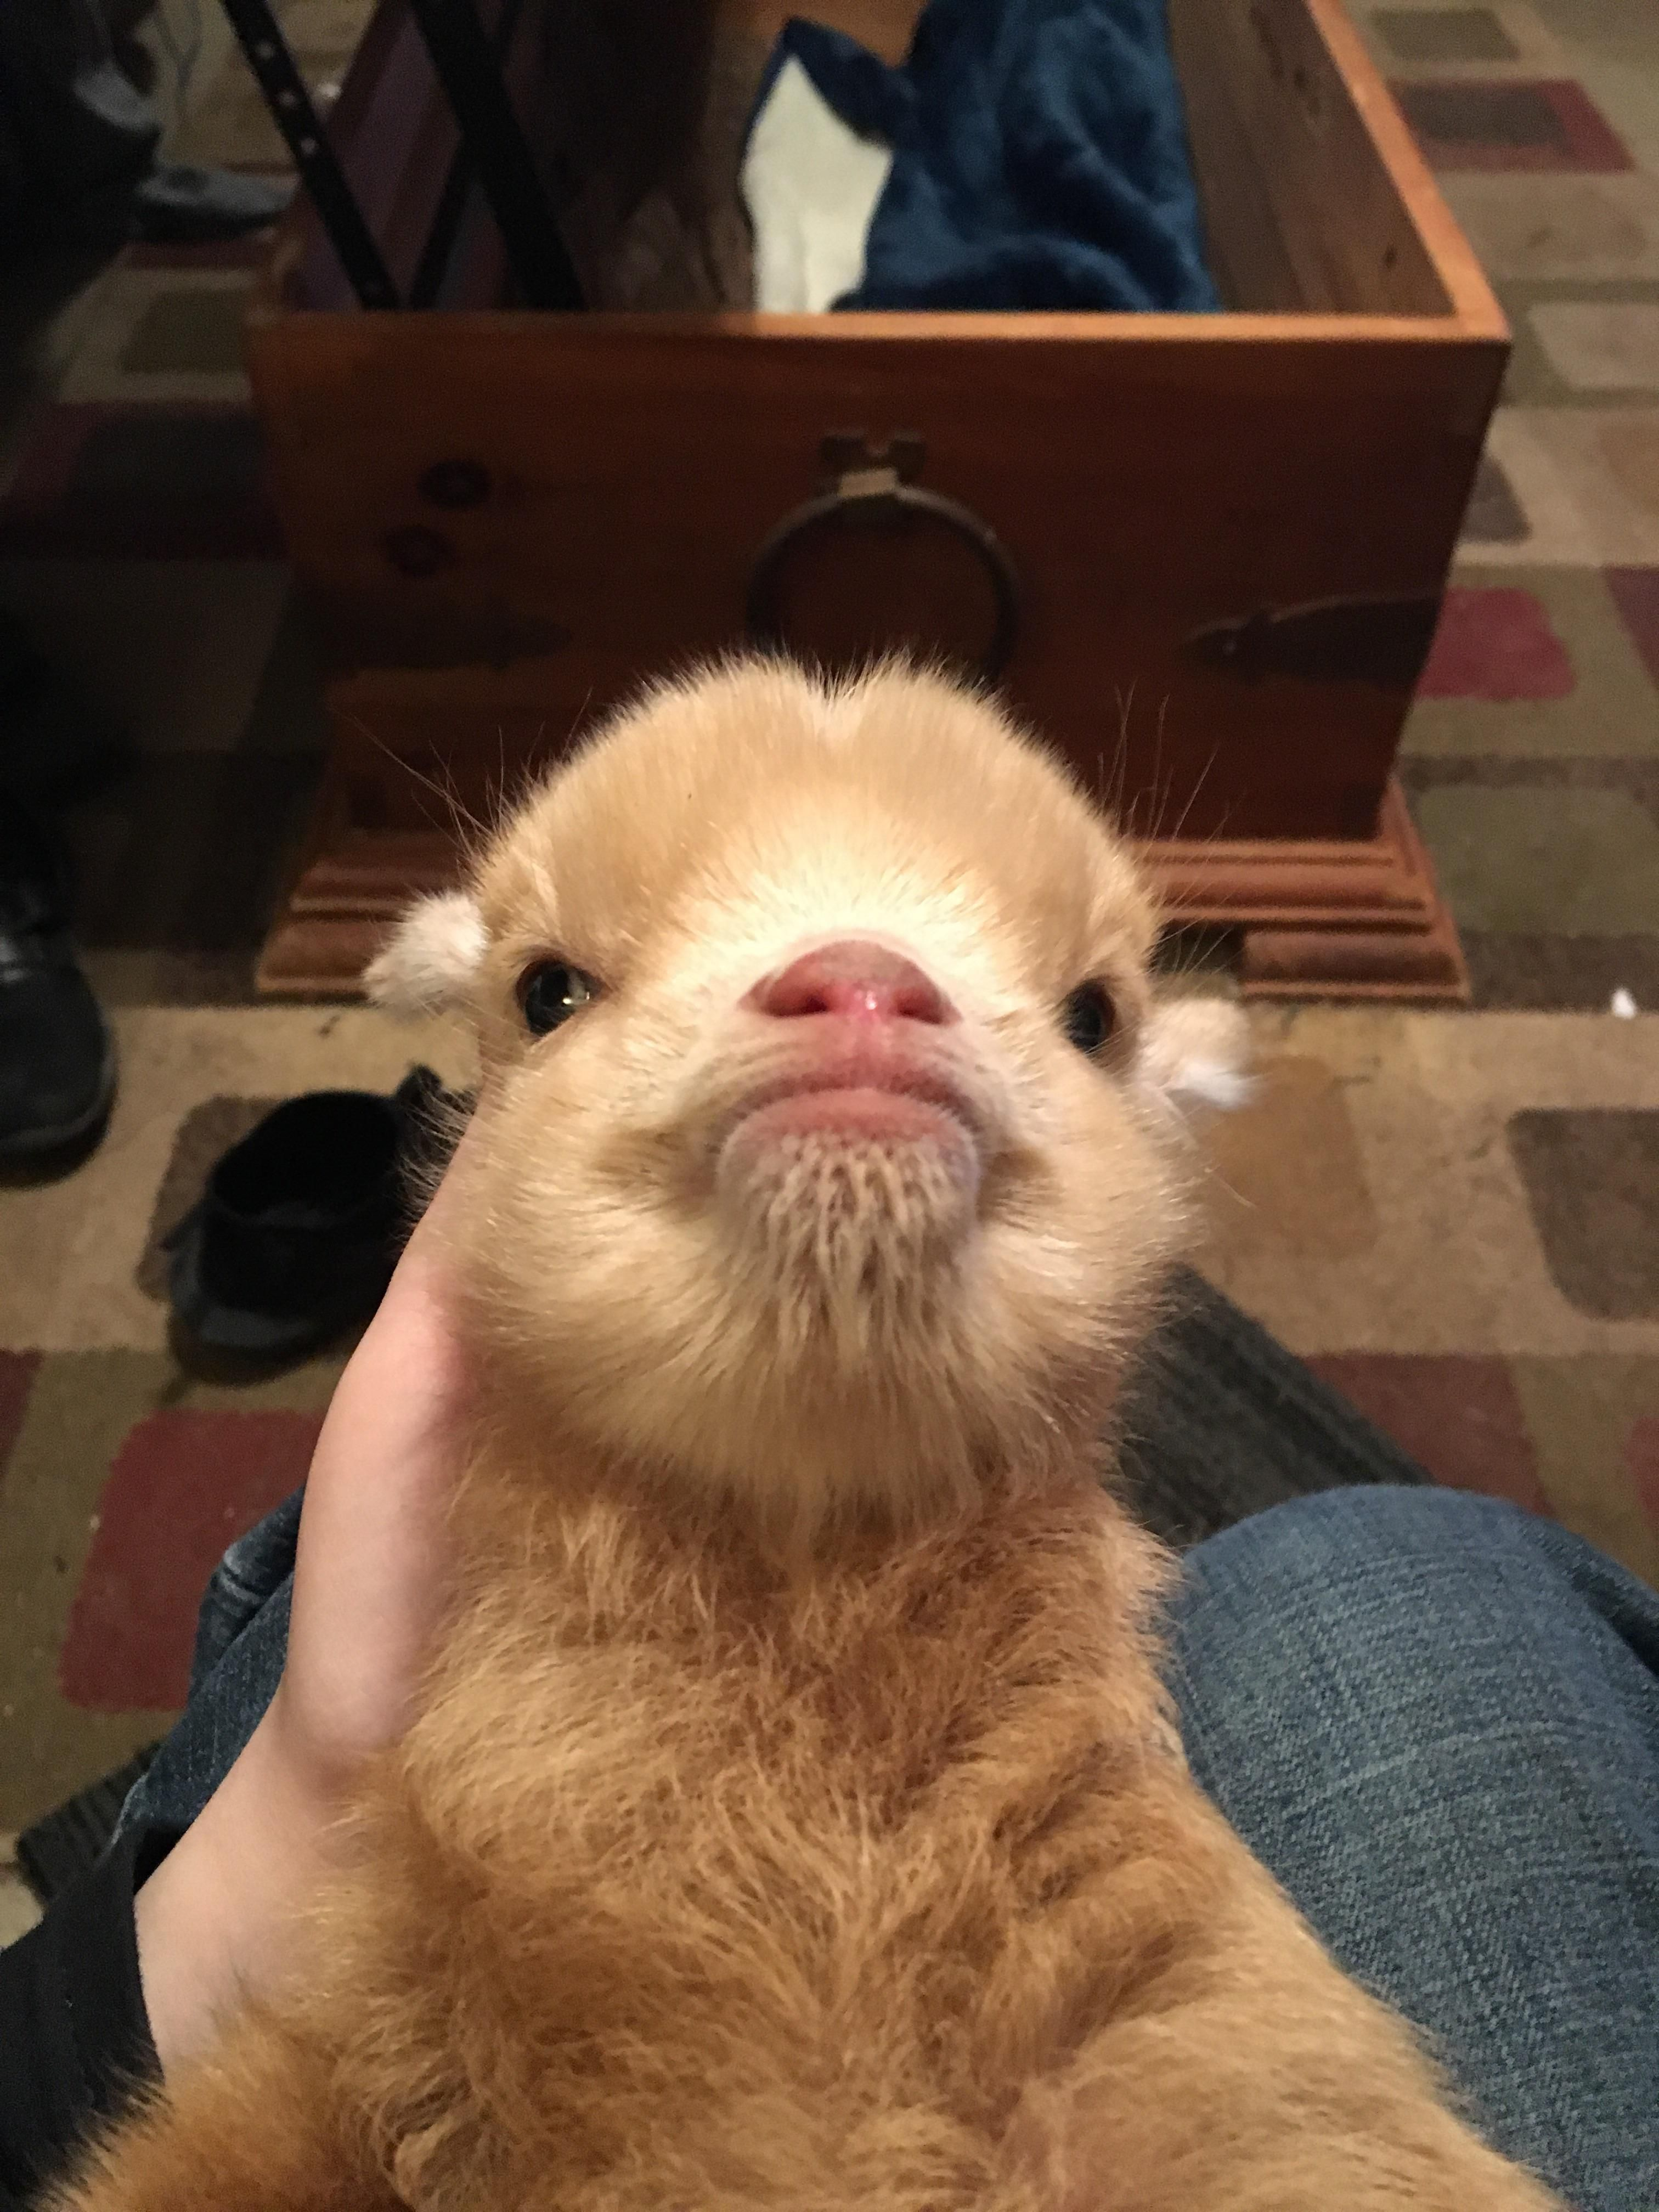 Goat with Down syndrome aww cute animals cats dogs